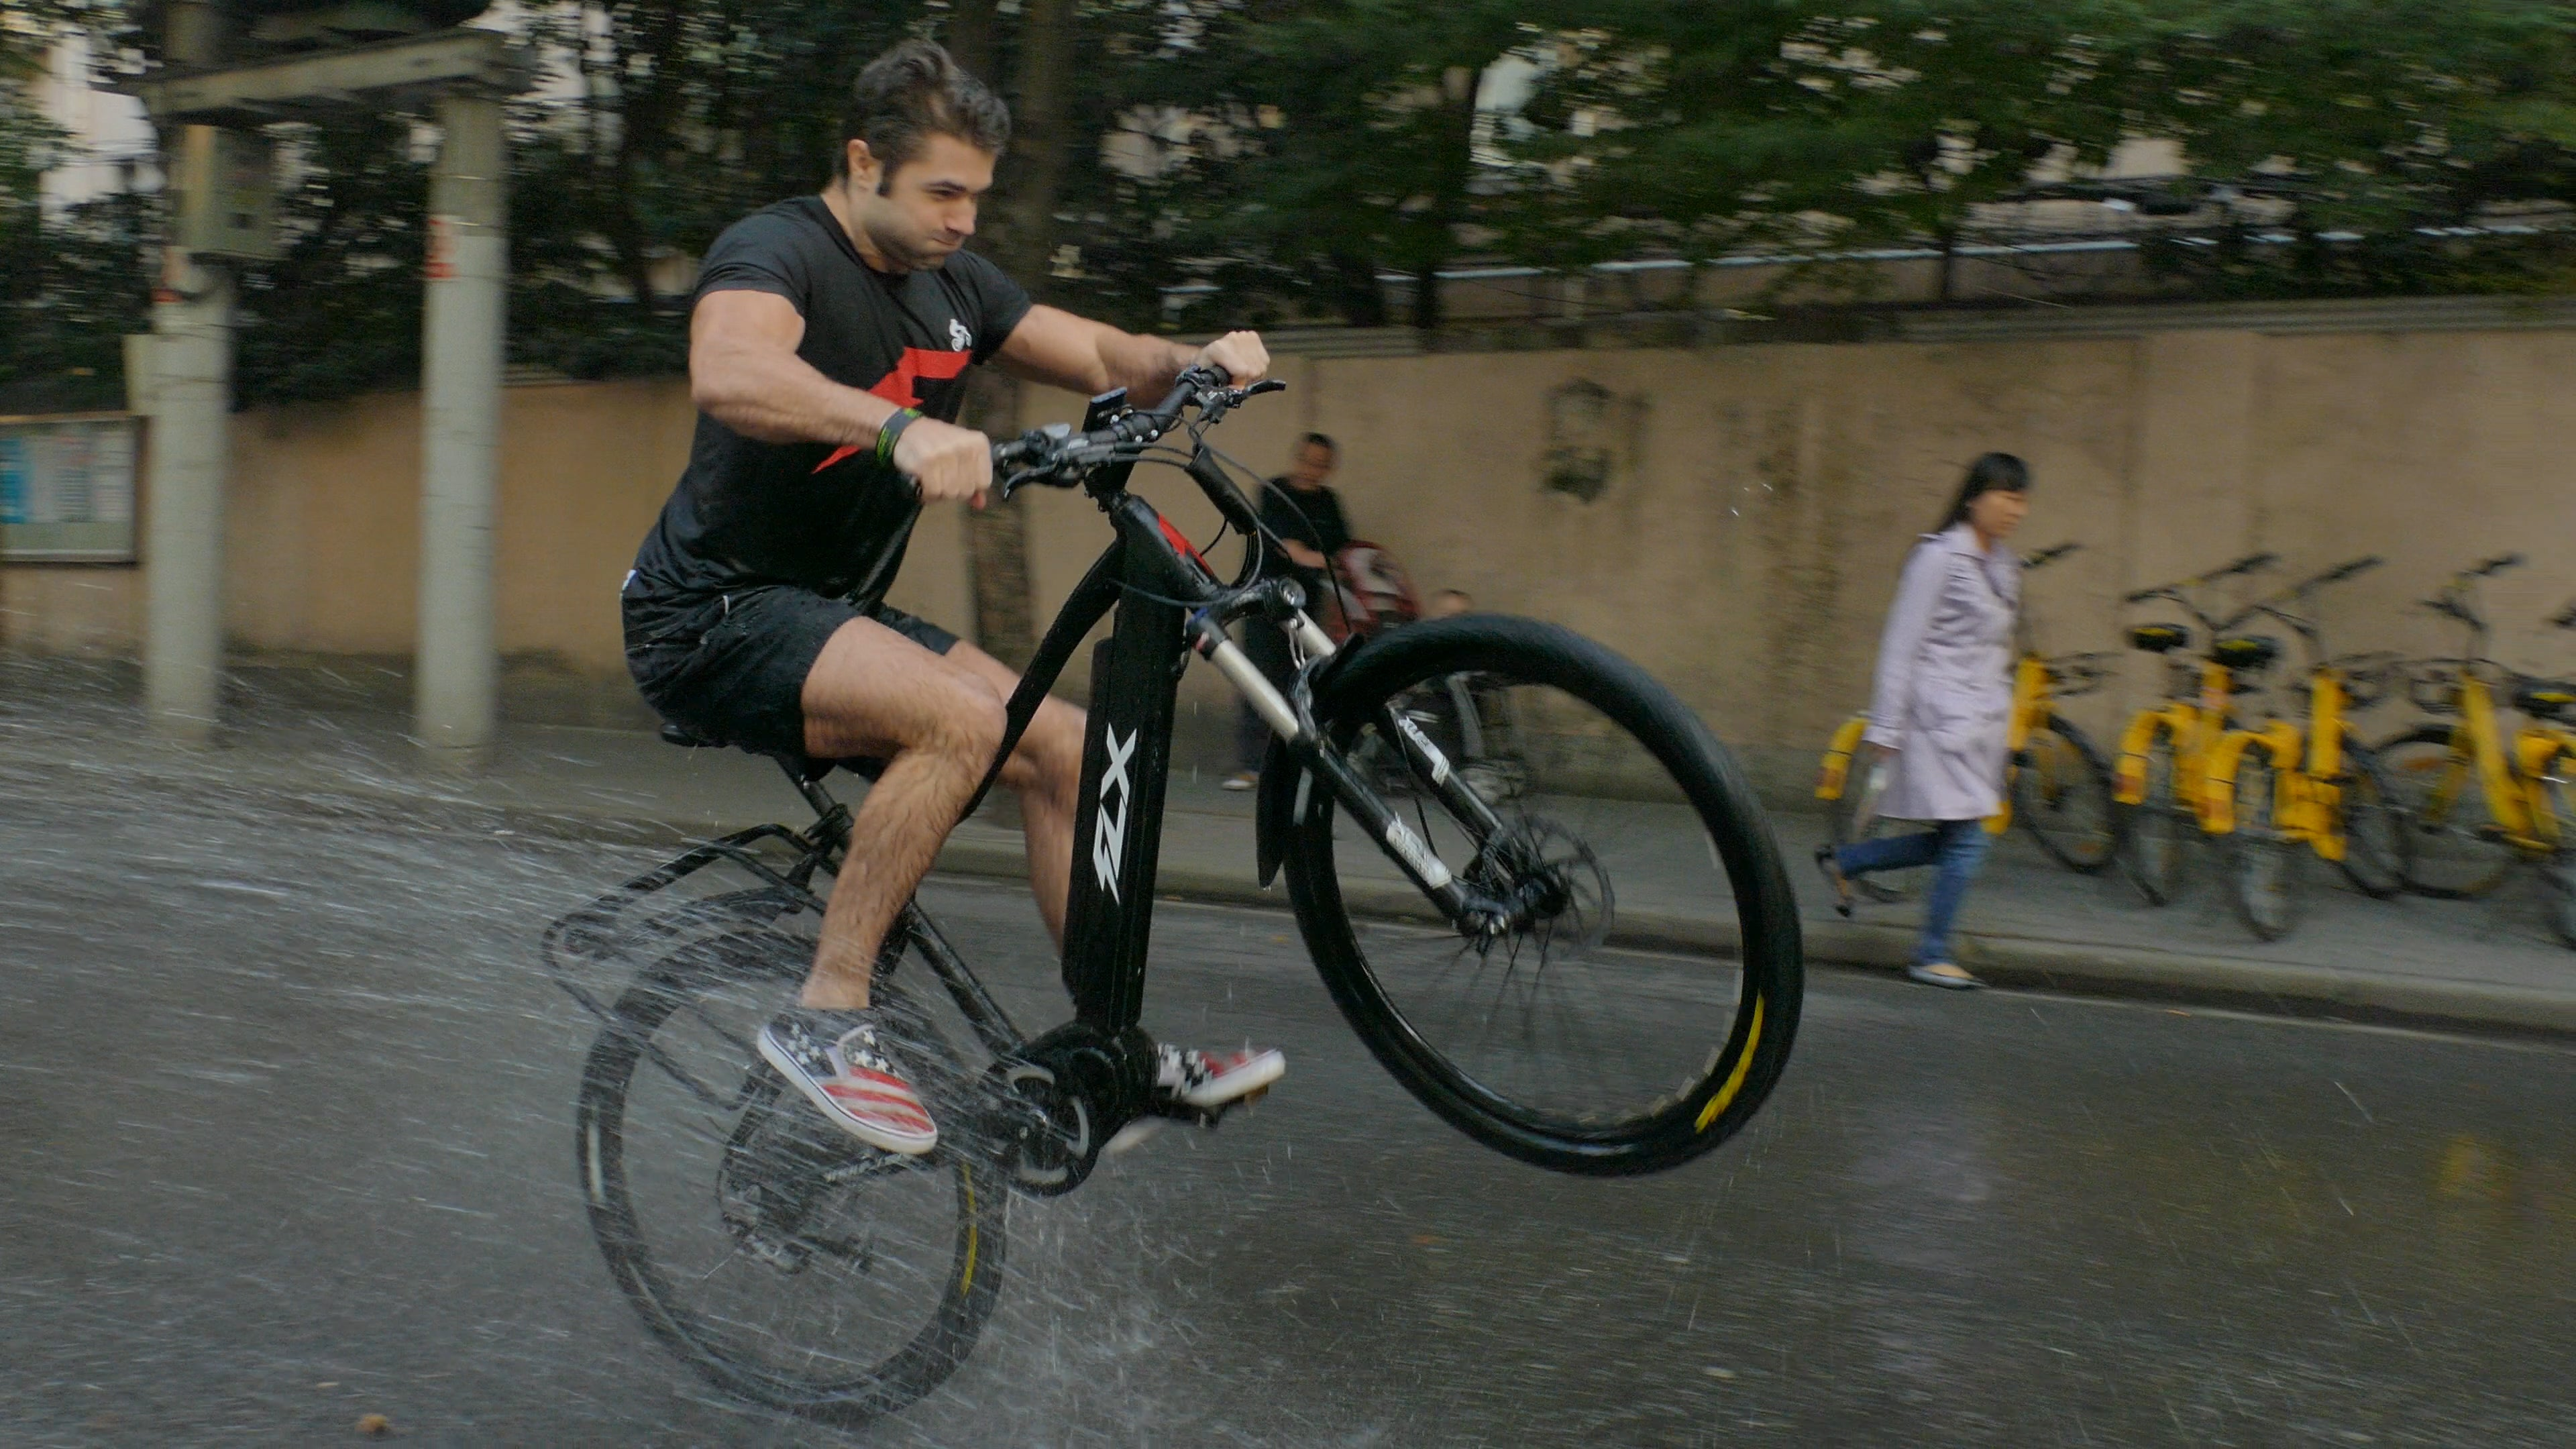 Can you ride an electric bike in the rain?